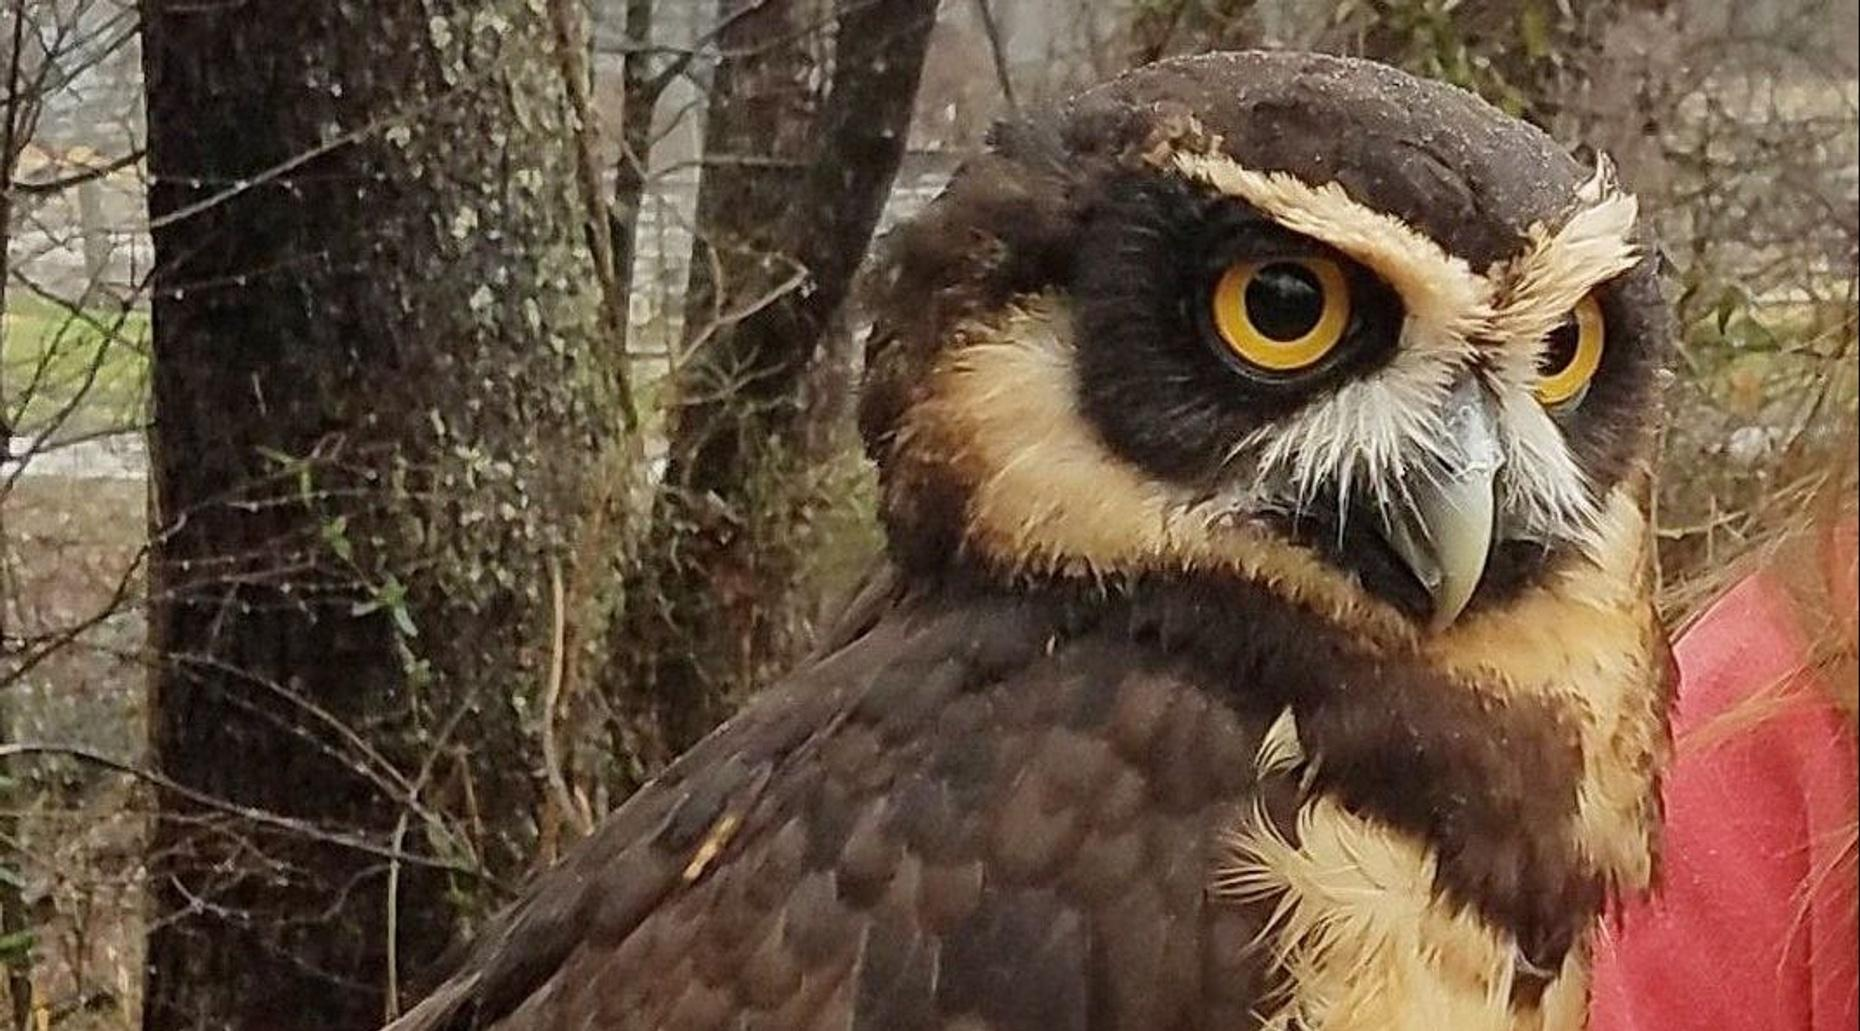 Owl and Friends Encounter in Cleveland